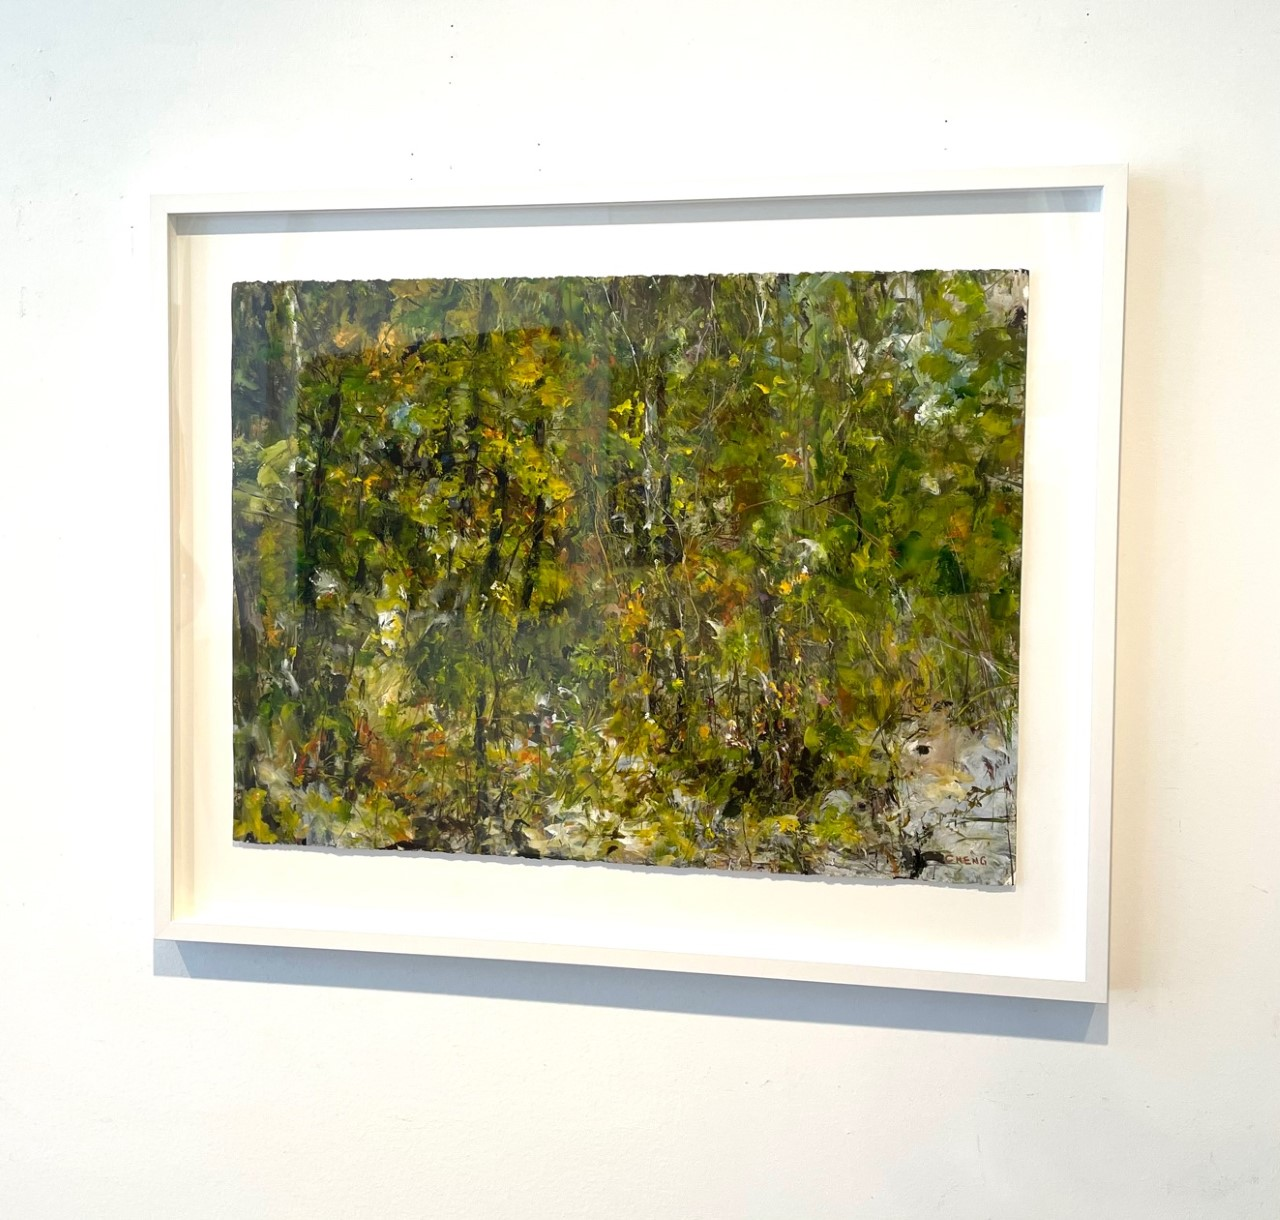 Judy-Cheng-Quarry-Rock-III-2010-Acrylic-On-Paper-23x30-Framed-3600-Online-Art-Galleries-front